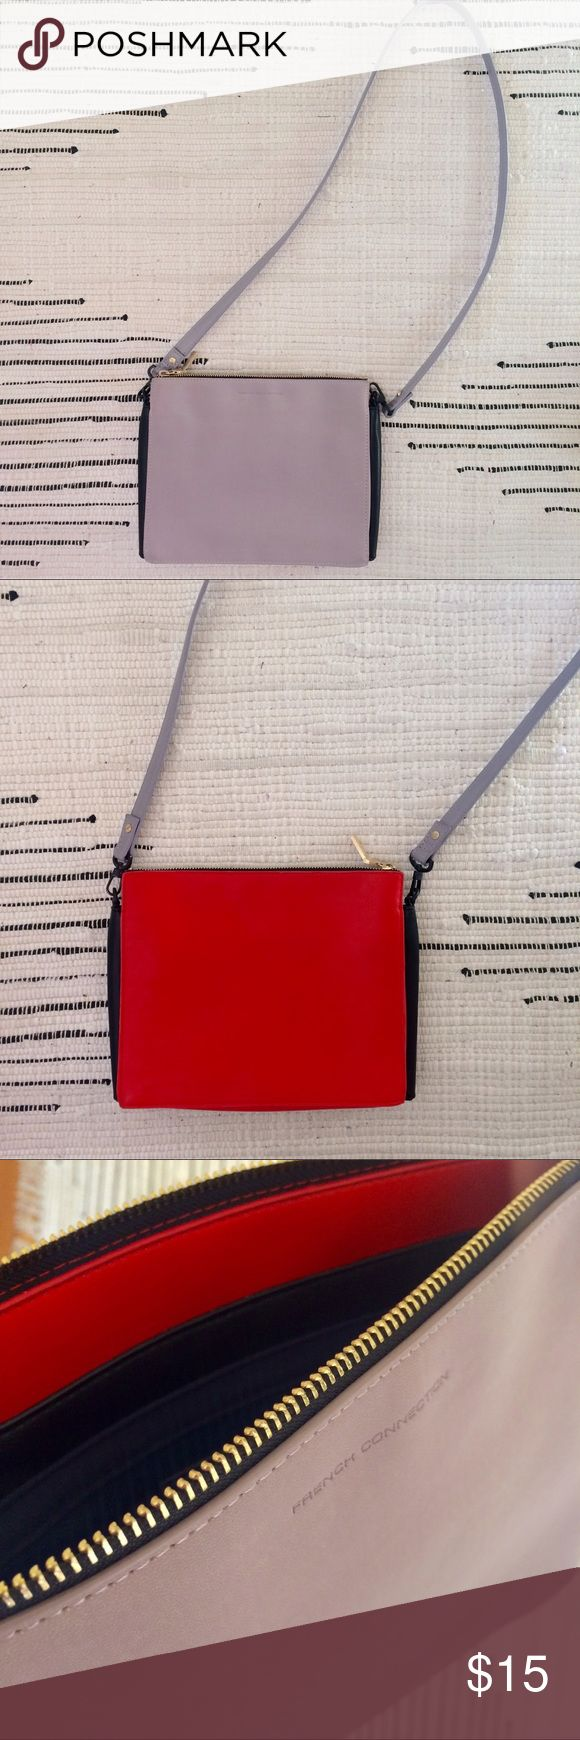 French Connection purse Color-clock cross body bag. Bright red leather, soft lavender suede like material and black accents. Zipper closure. Long detachable strap. French Connection Bags Crossbody Bags